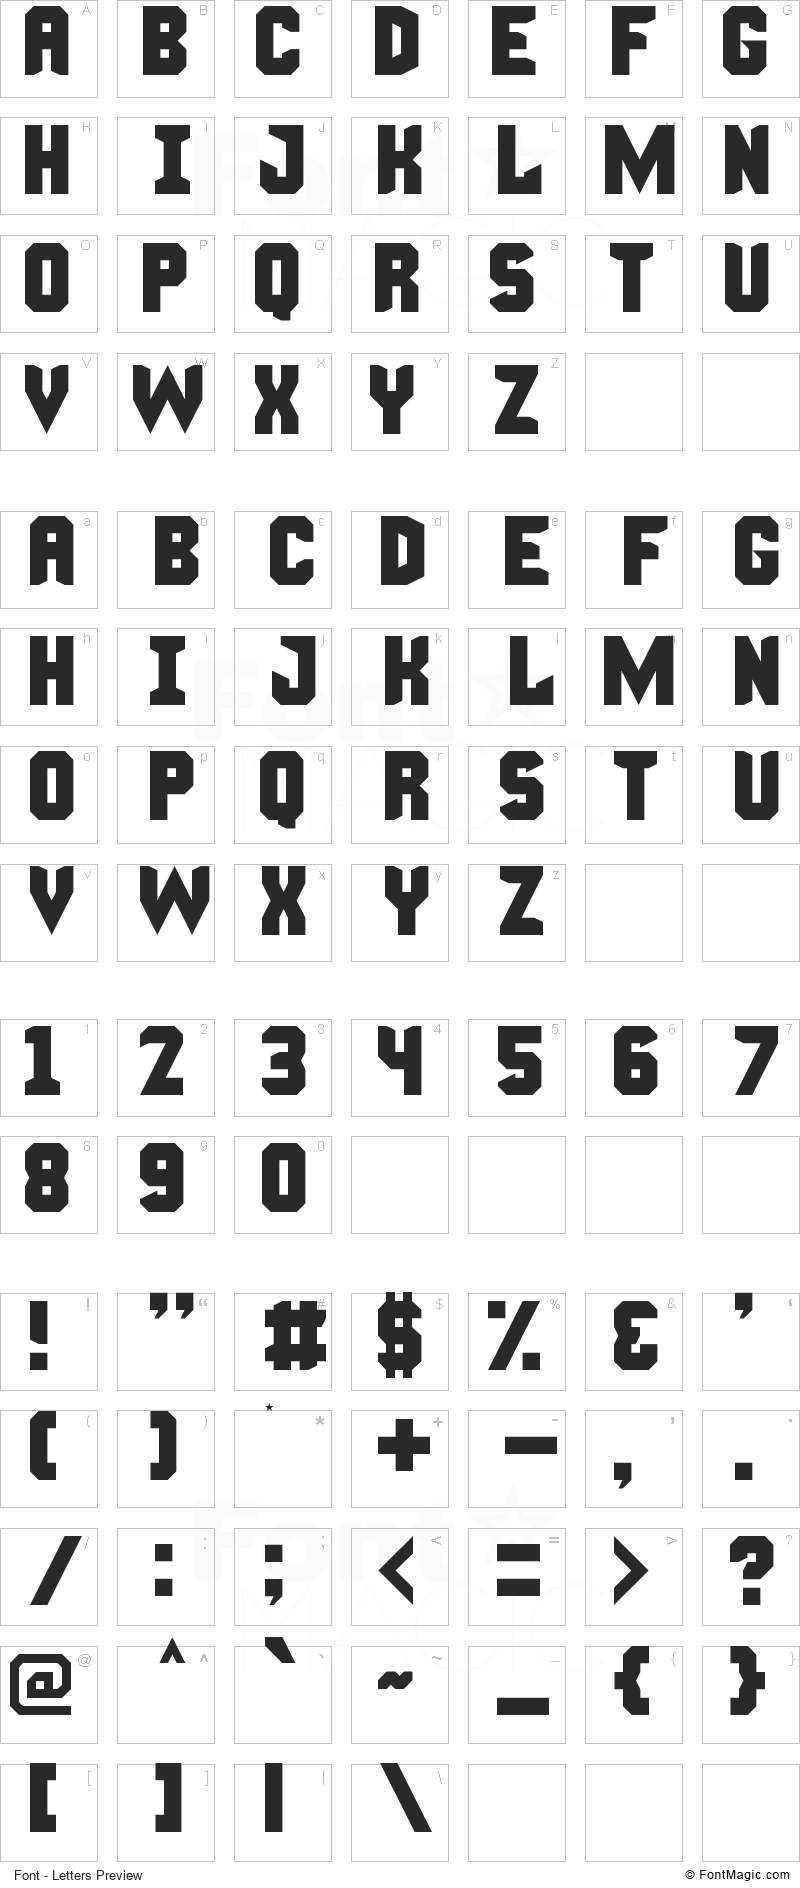 Manly Man Font - All Latters Preview Chart